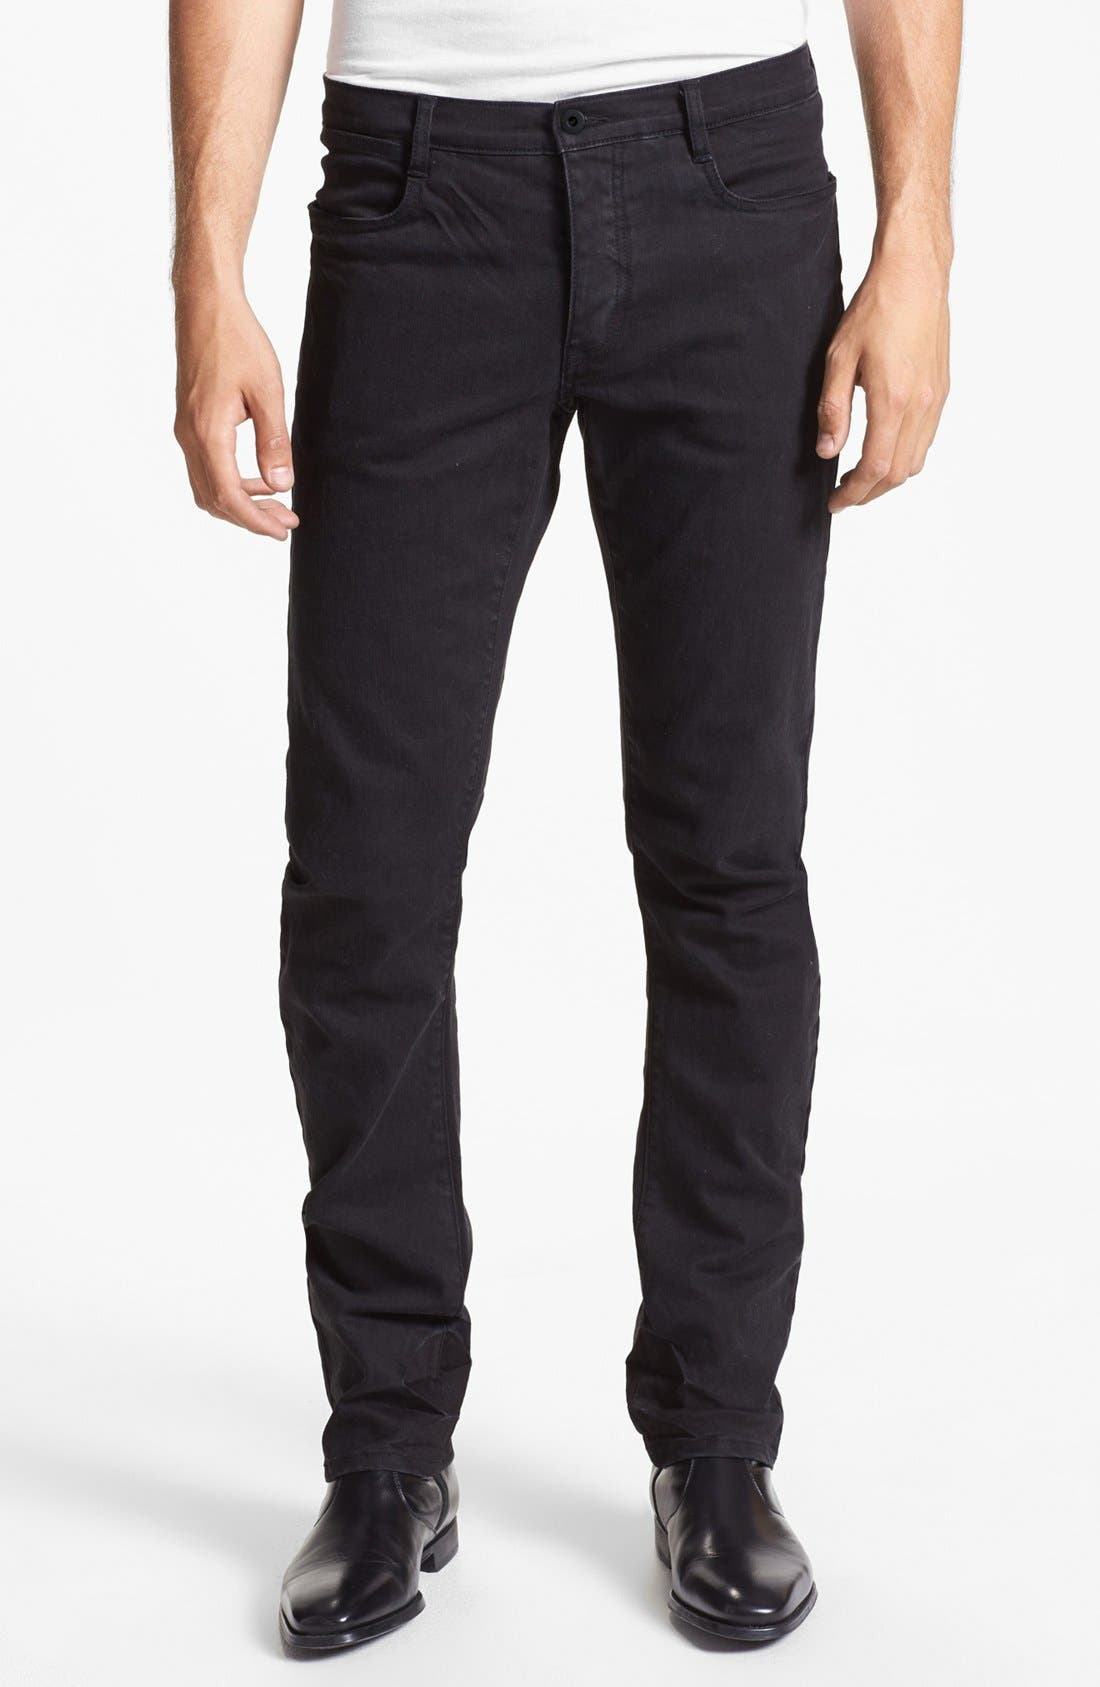 Main Image - Kenneth Cole Collection Slim Fit Jeans (Black)